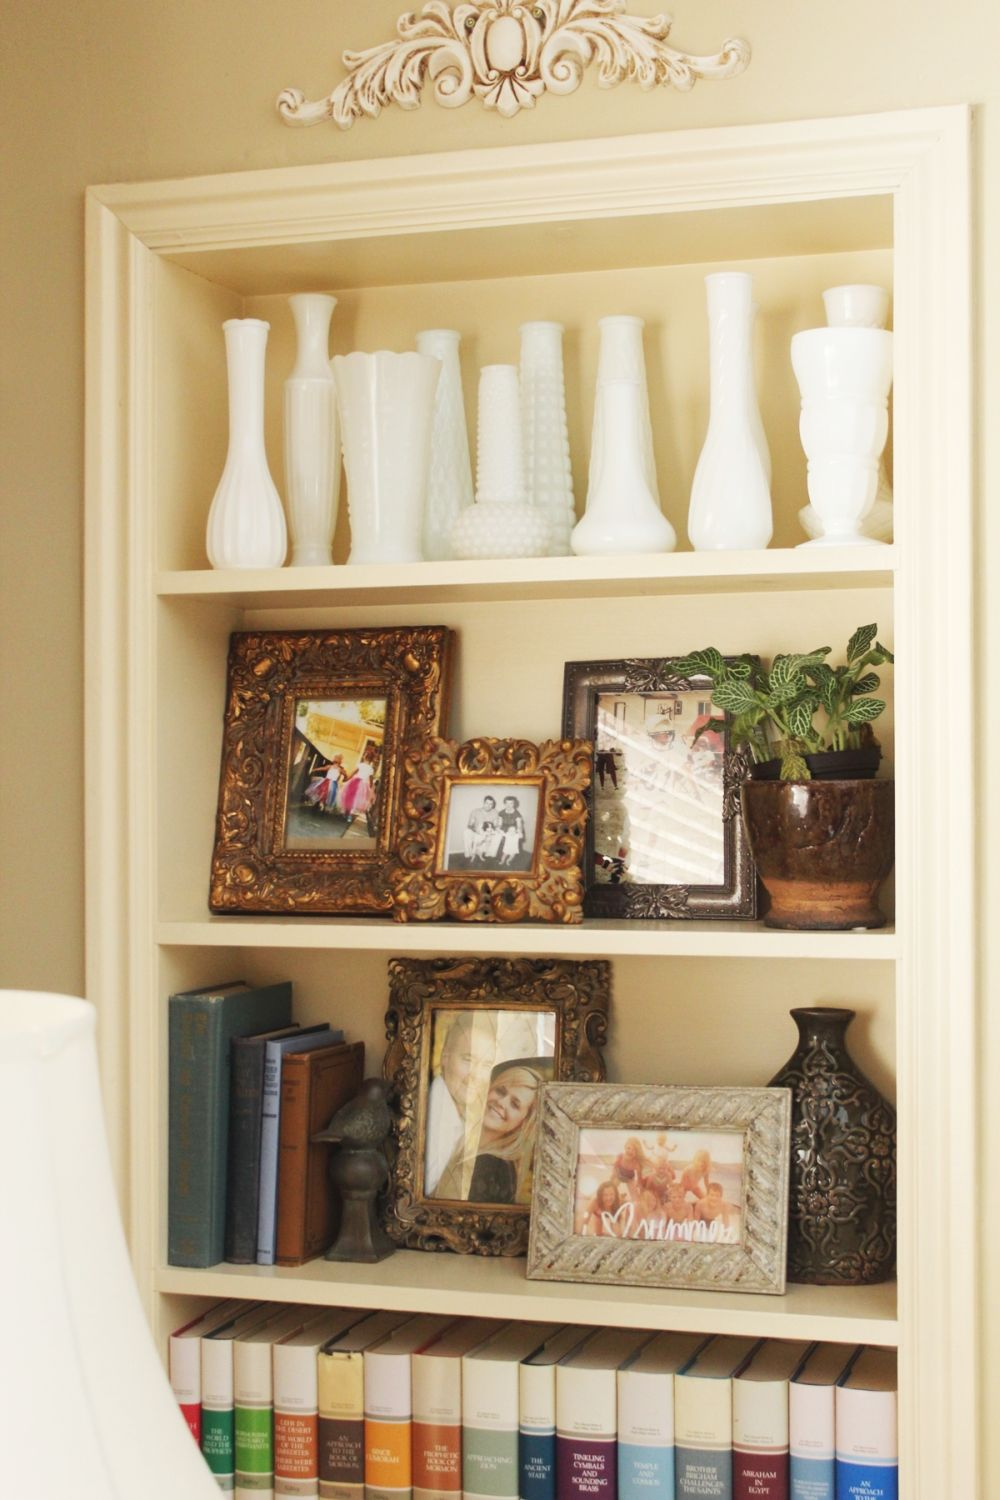 Cheap Decorating Ideas for the BudgetSavvy Stylist